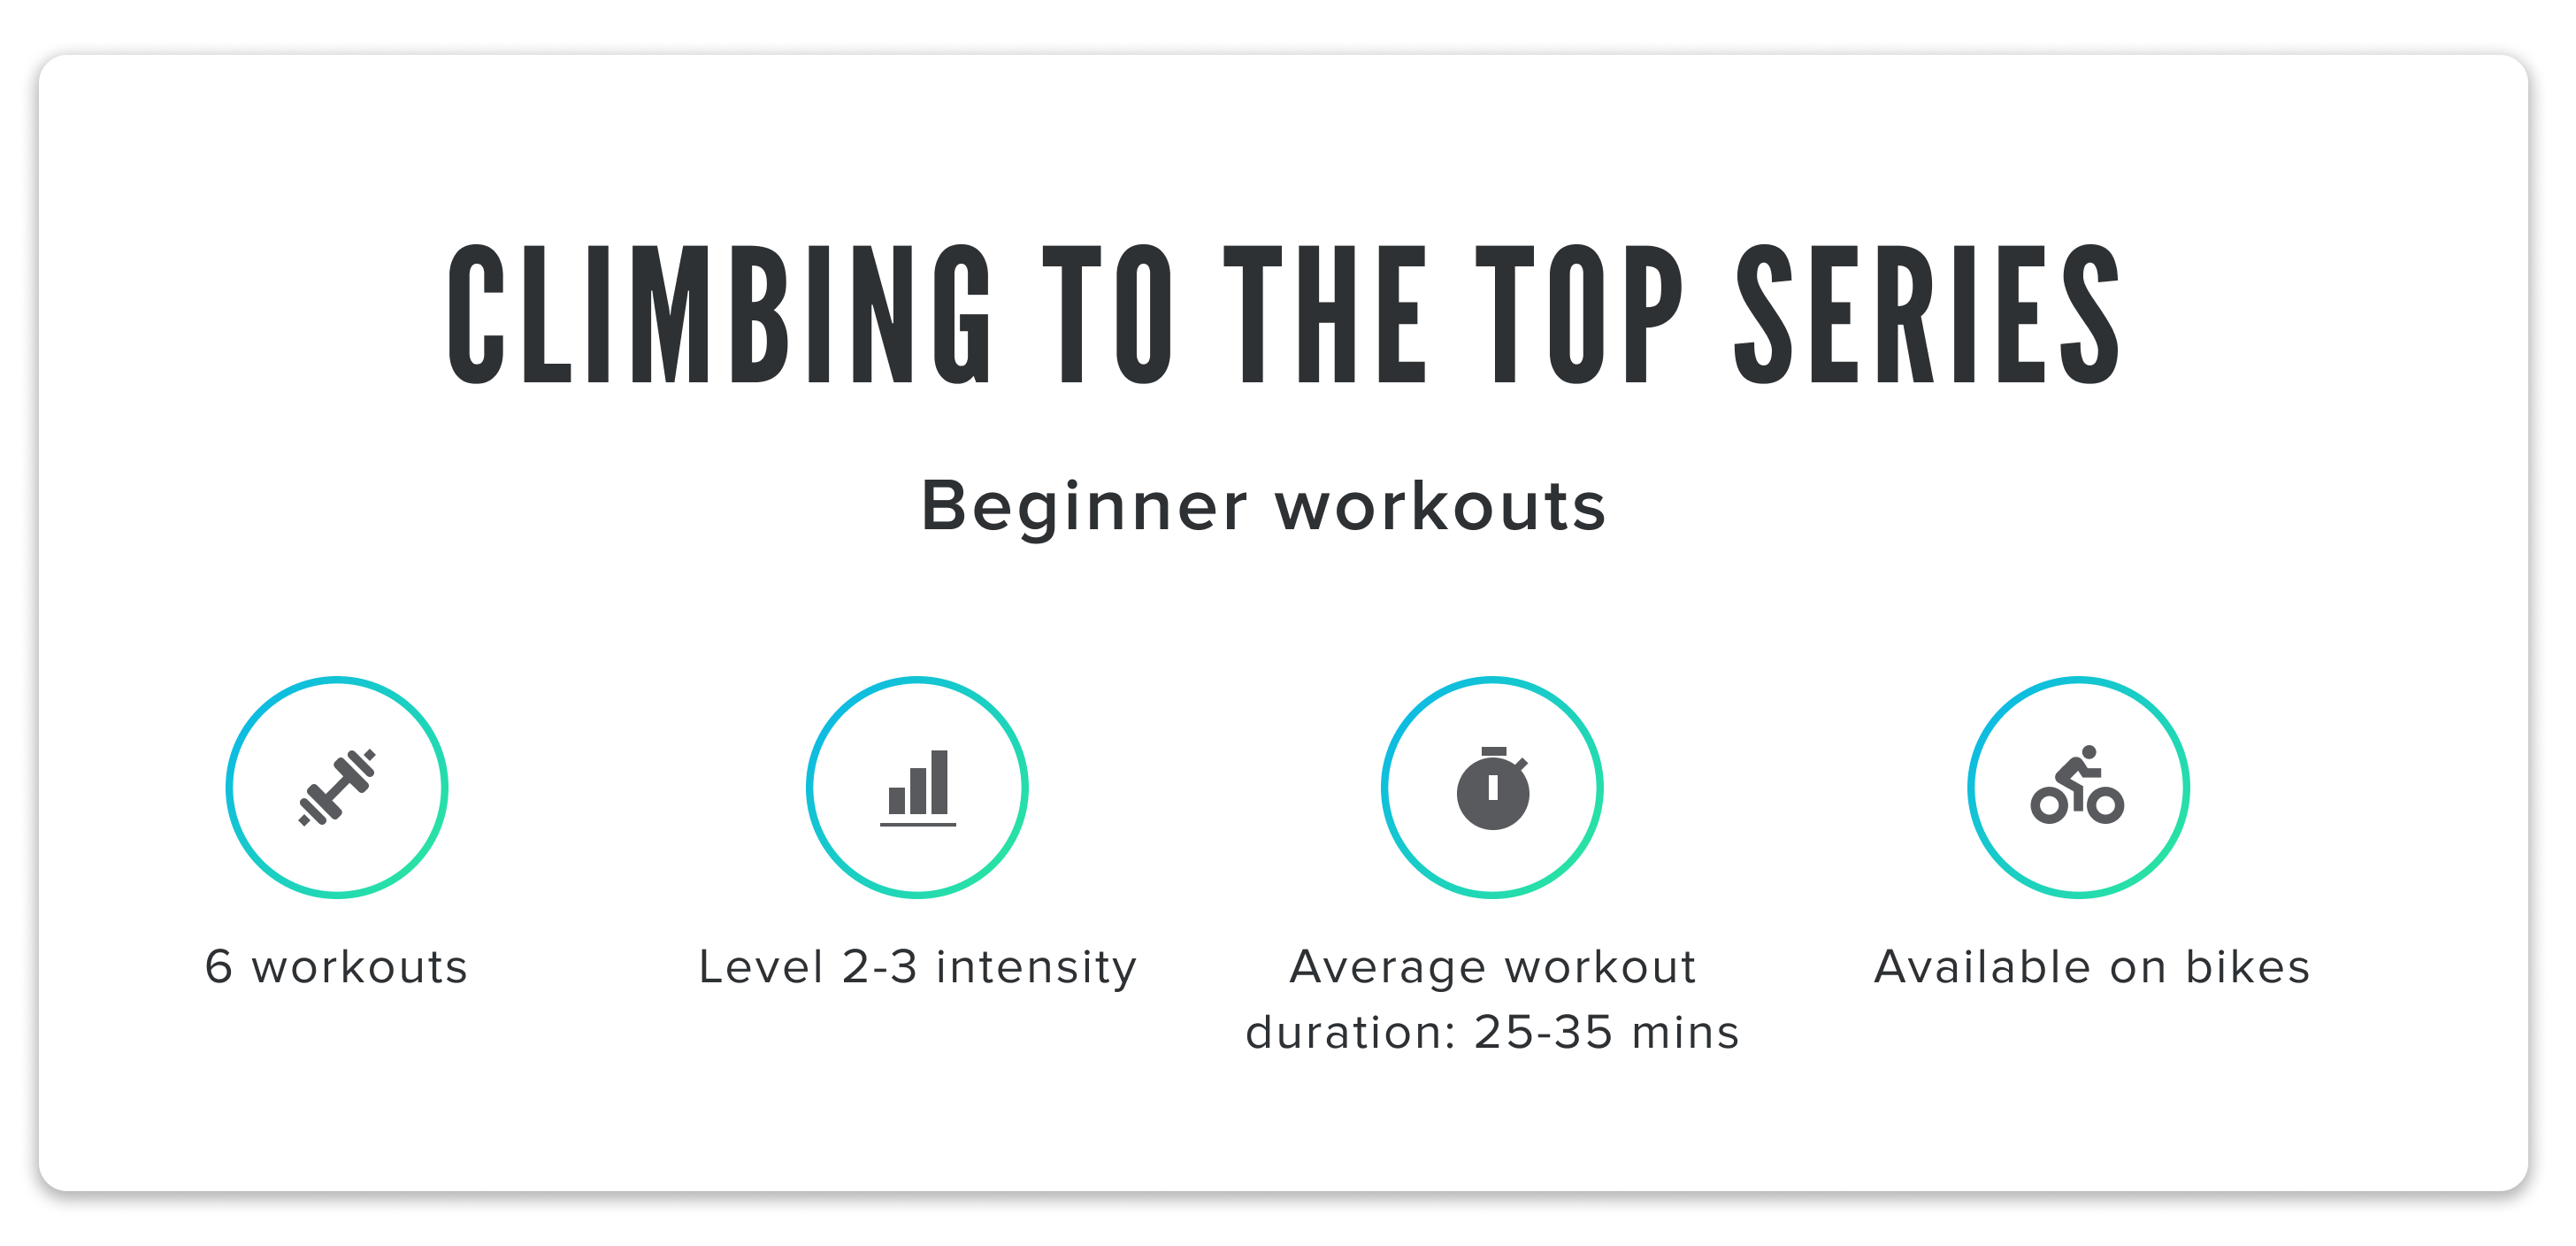 iFit Series Feature: Climbing to the Top bike workouts